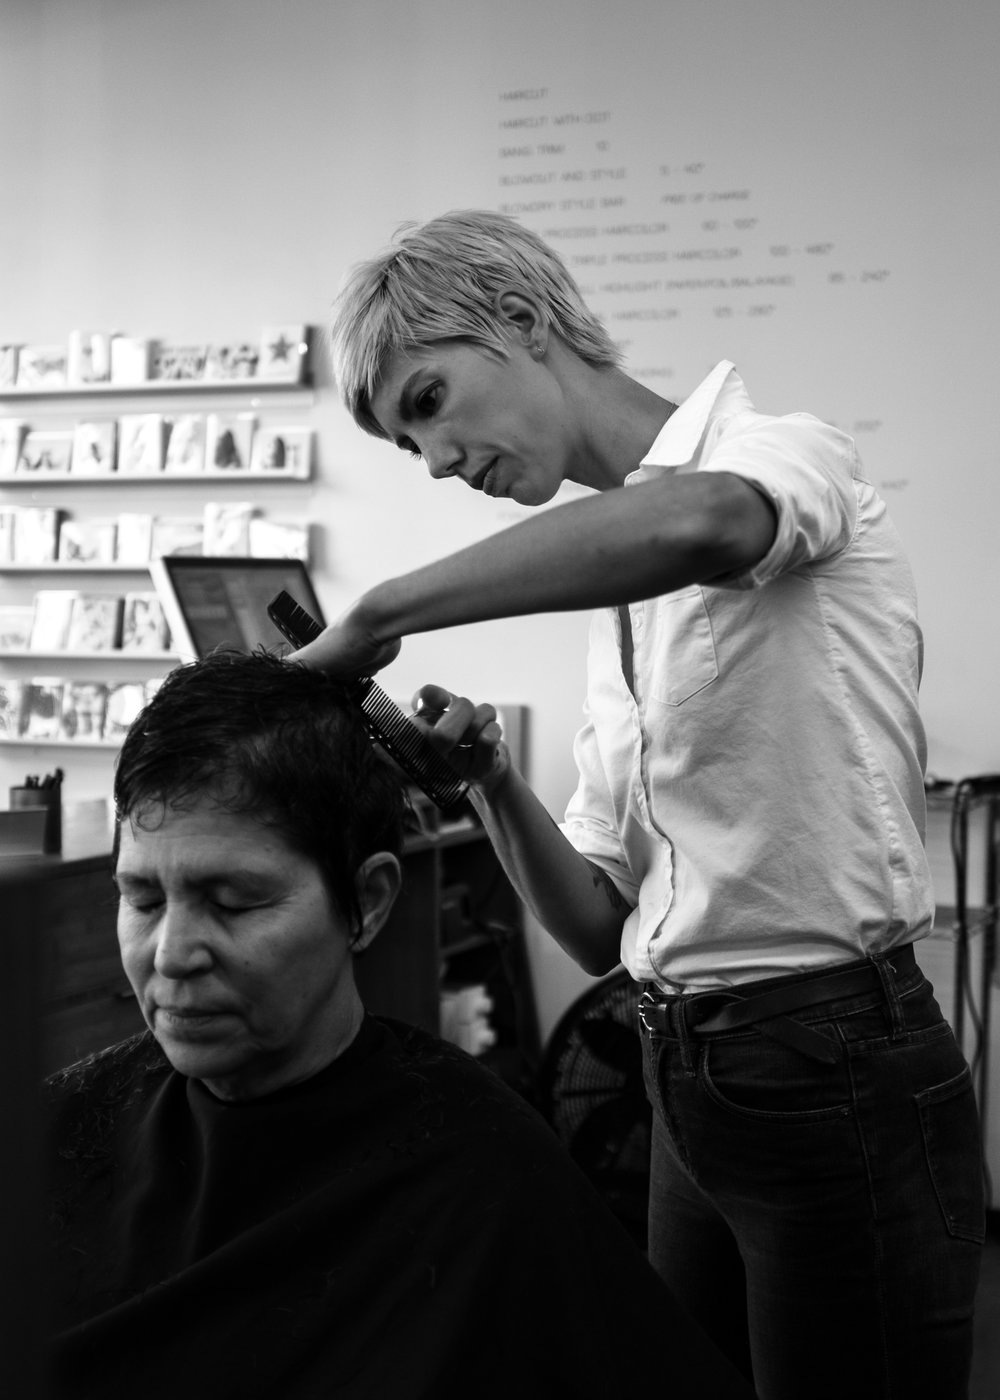 tenpachi Seattle hair hairstylist